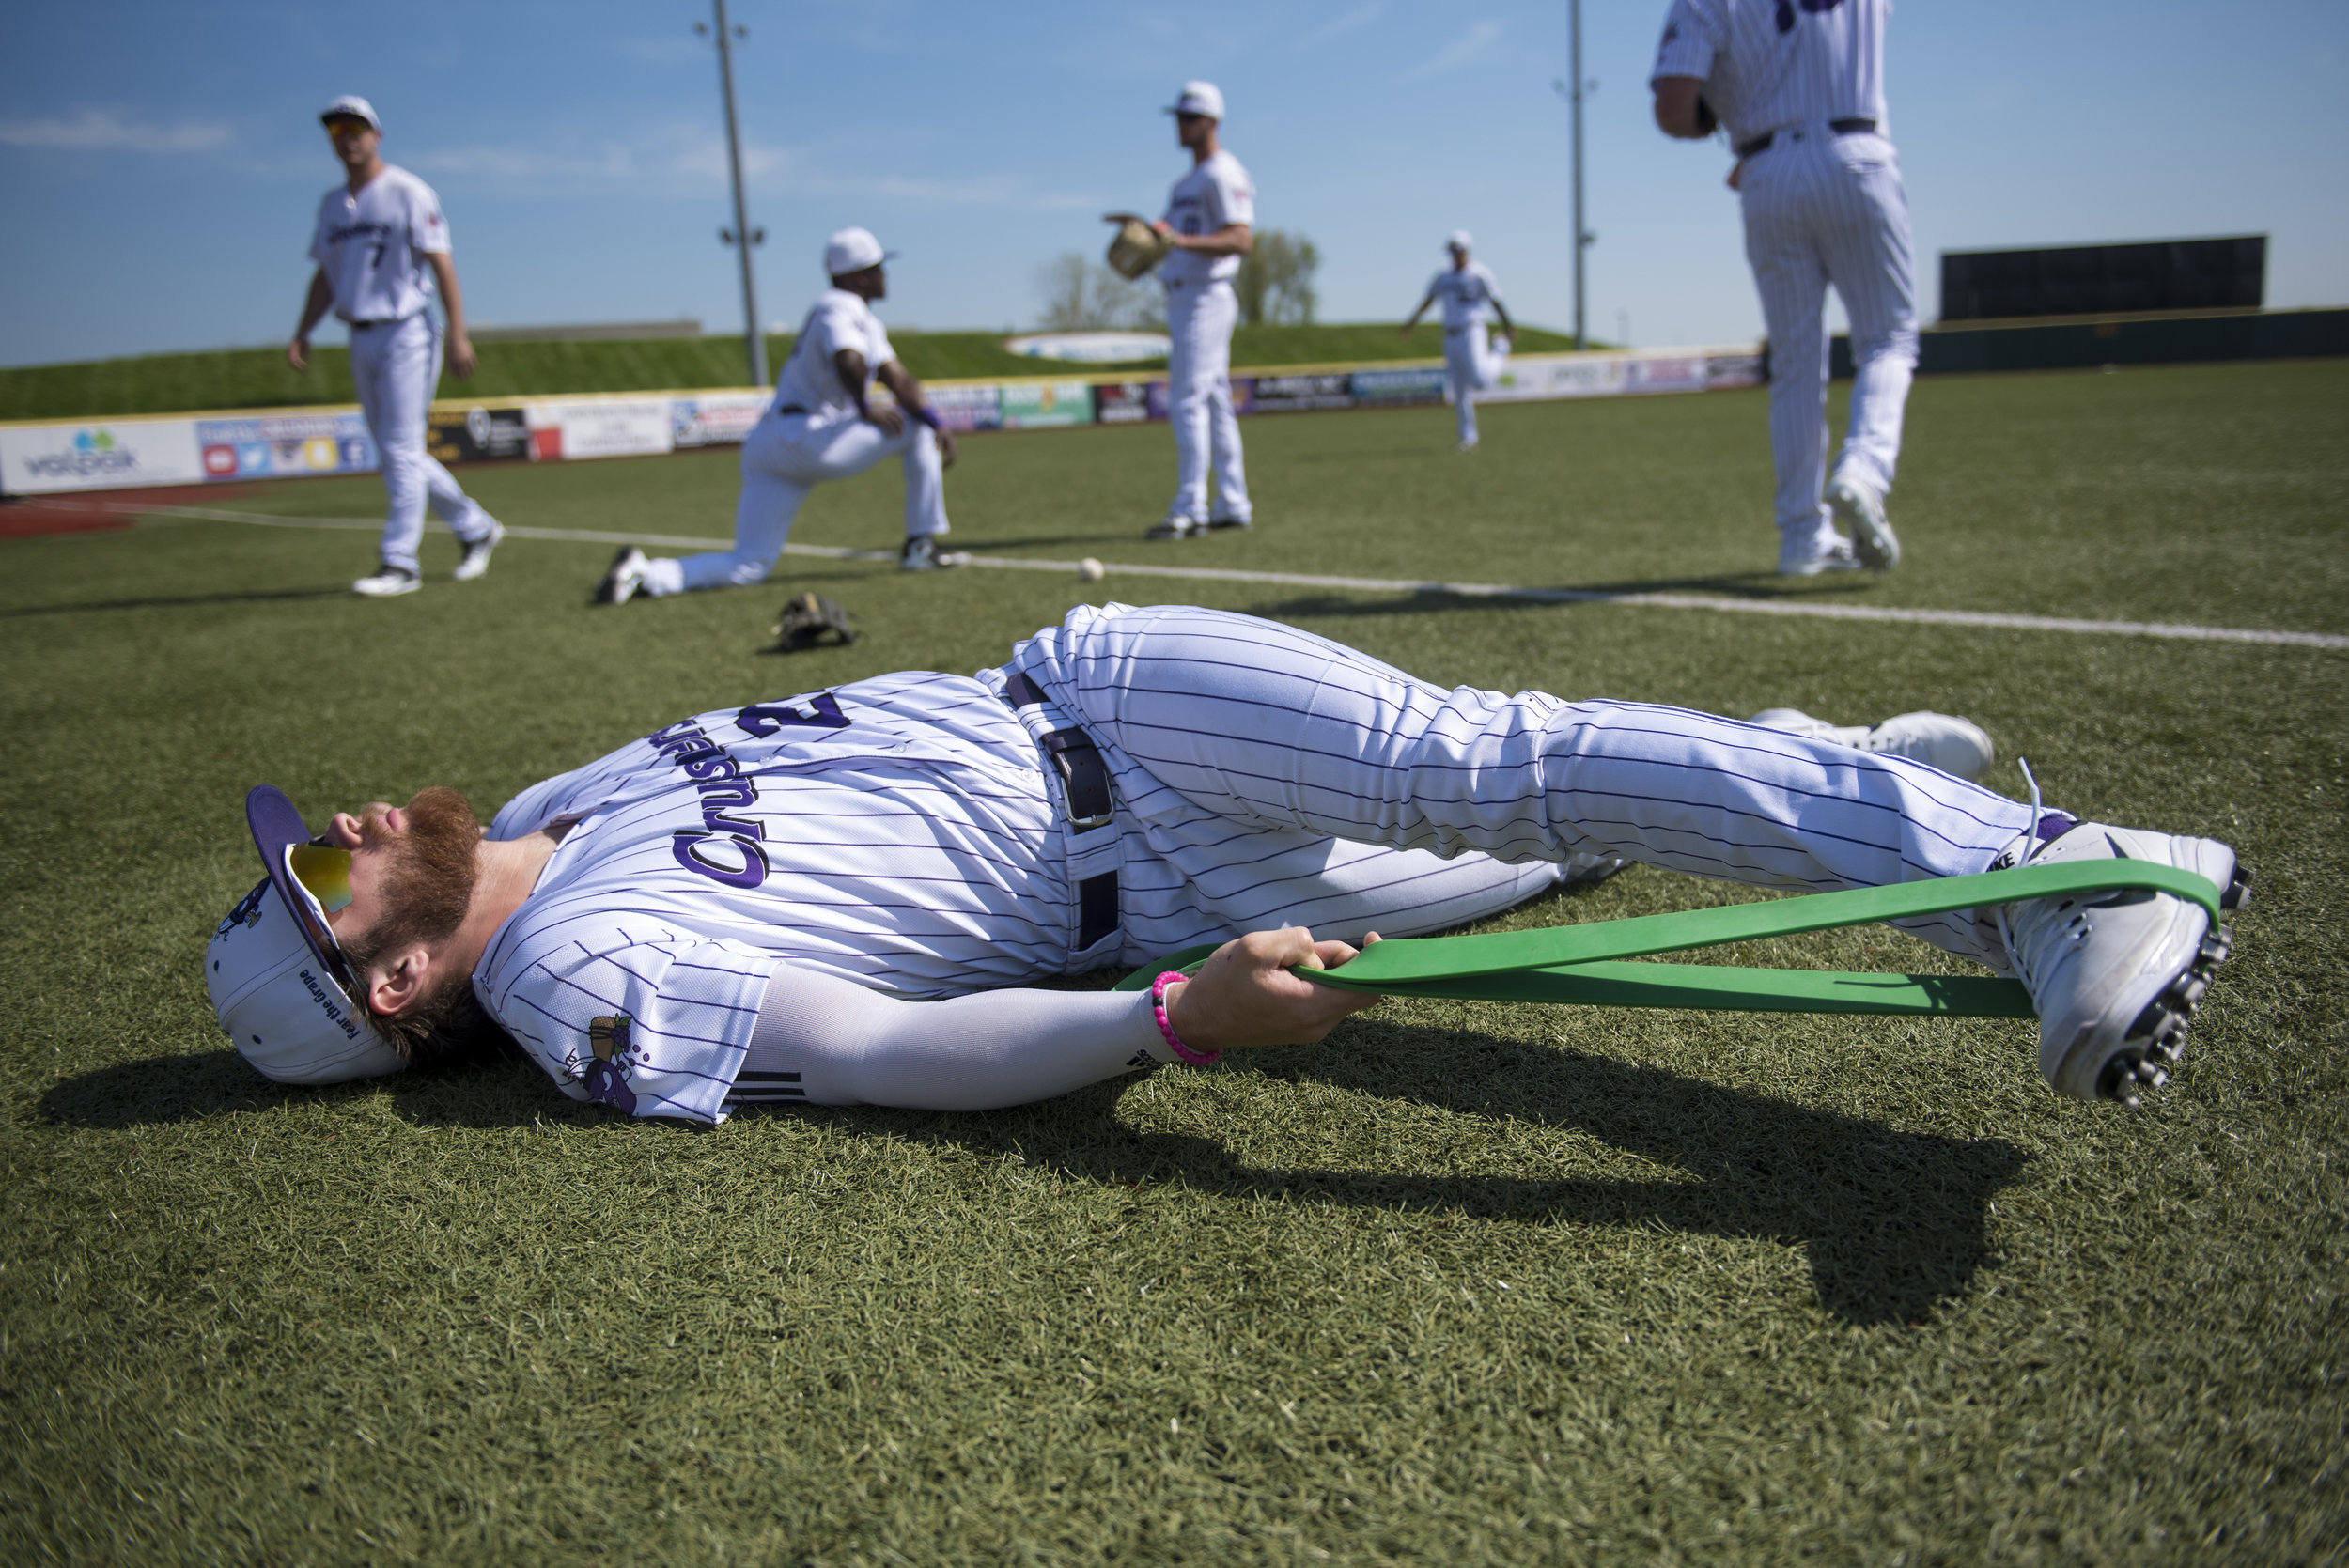 Lake Erie Crushers' Doug Trimble warms up before facing off with the Normal Cornhuskers on May 17, 2018 at Sprenger Stadium in Avon, Ohio.